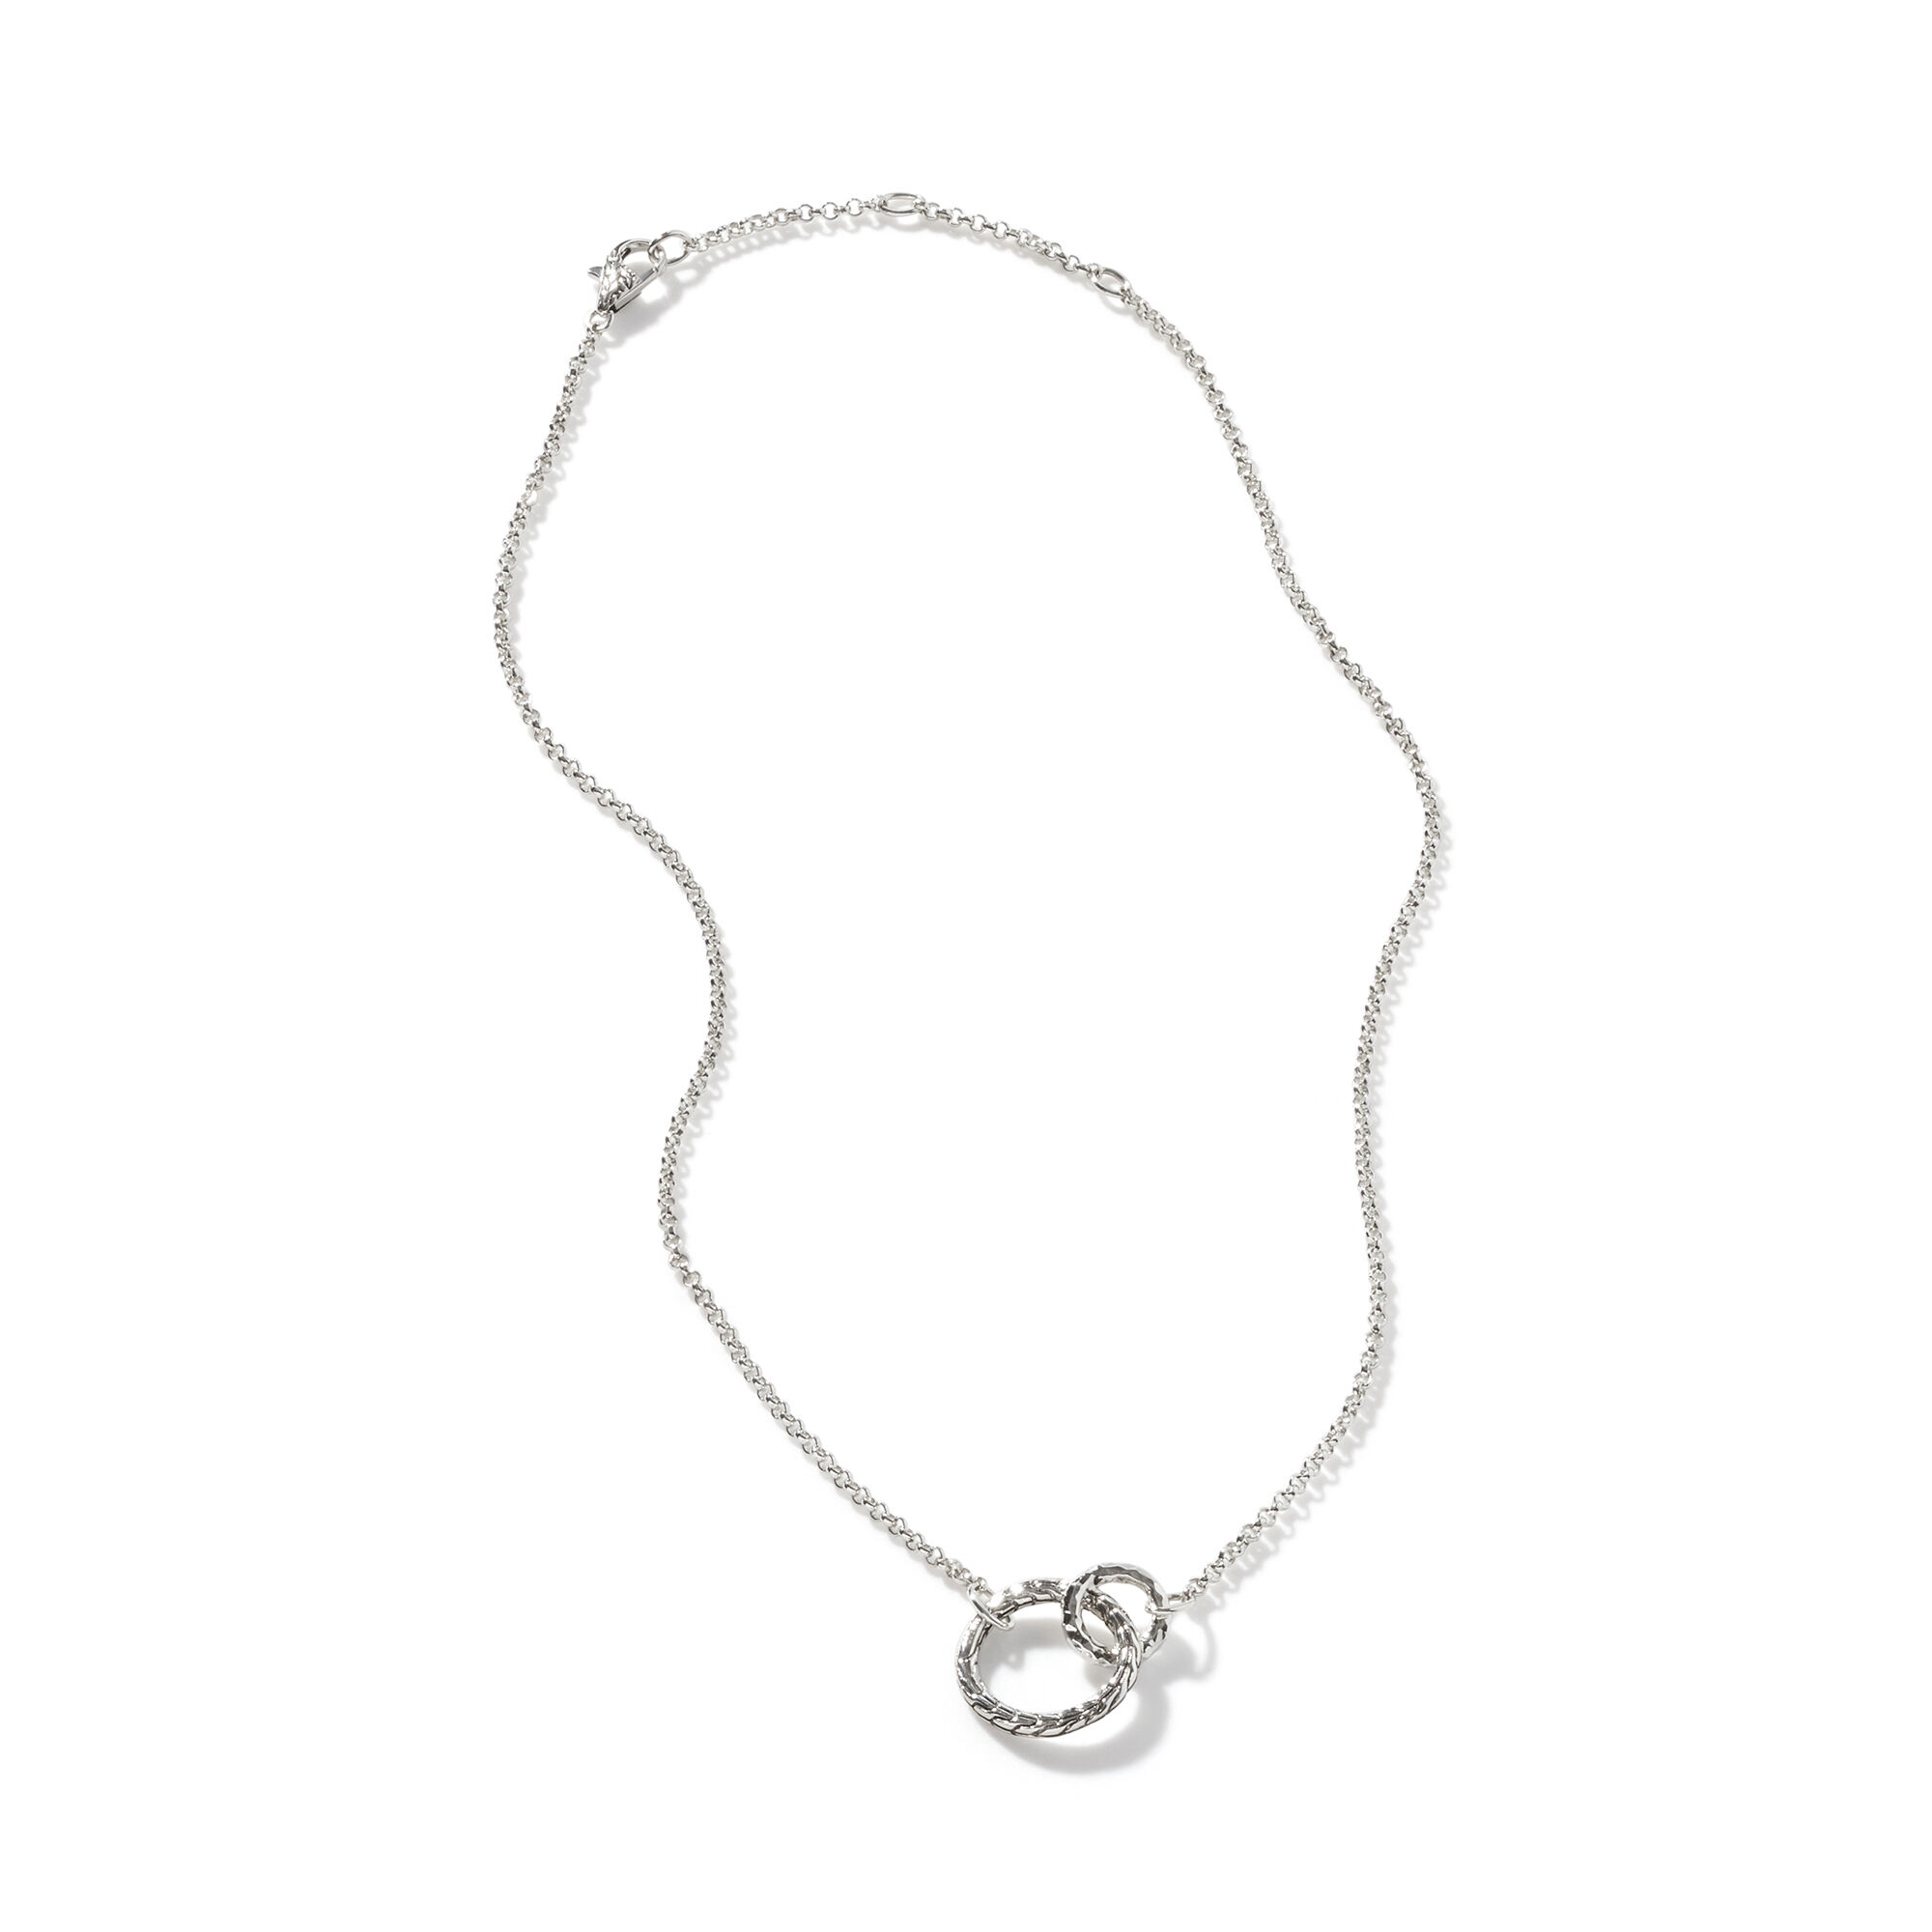 Classic Chain Interlinking Necklace in Hammered Silver, , large